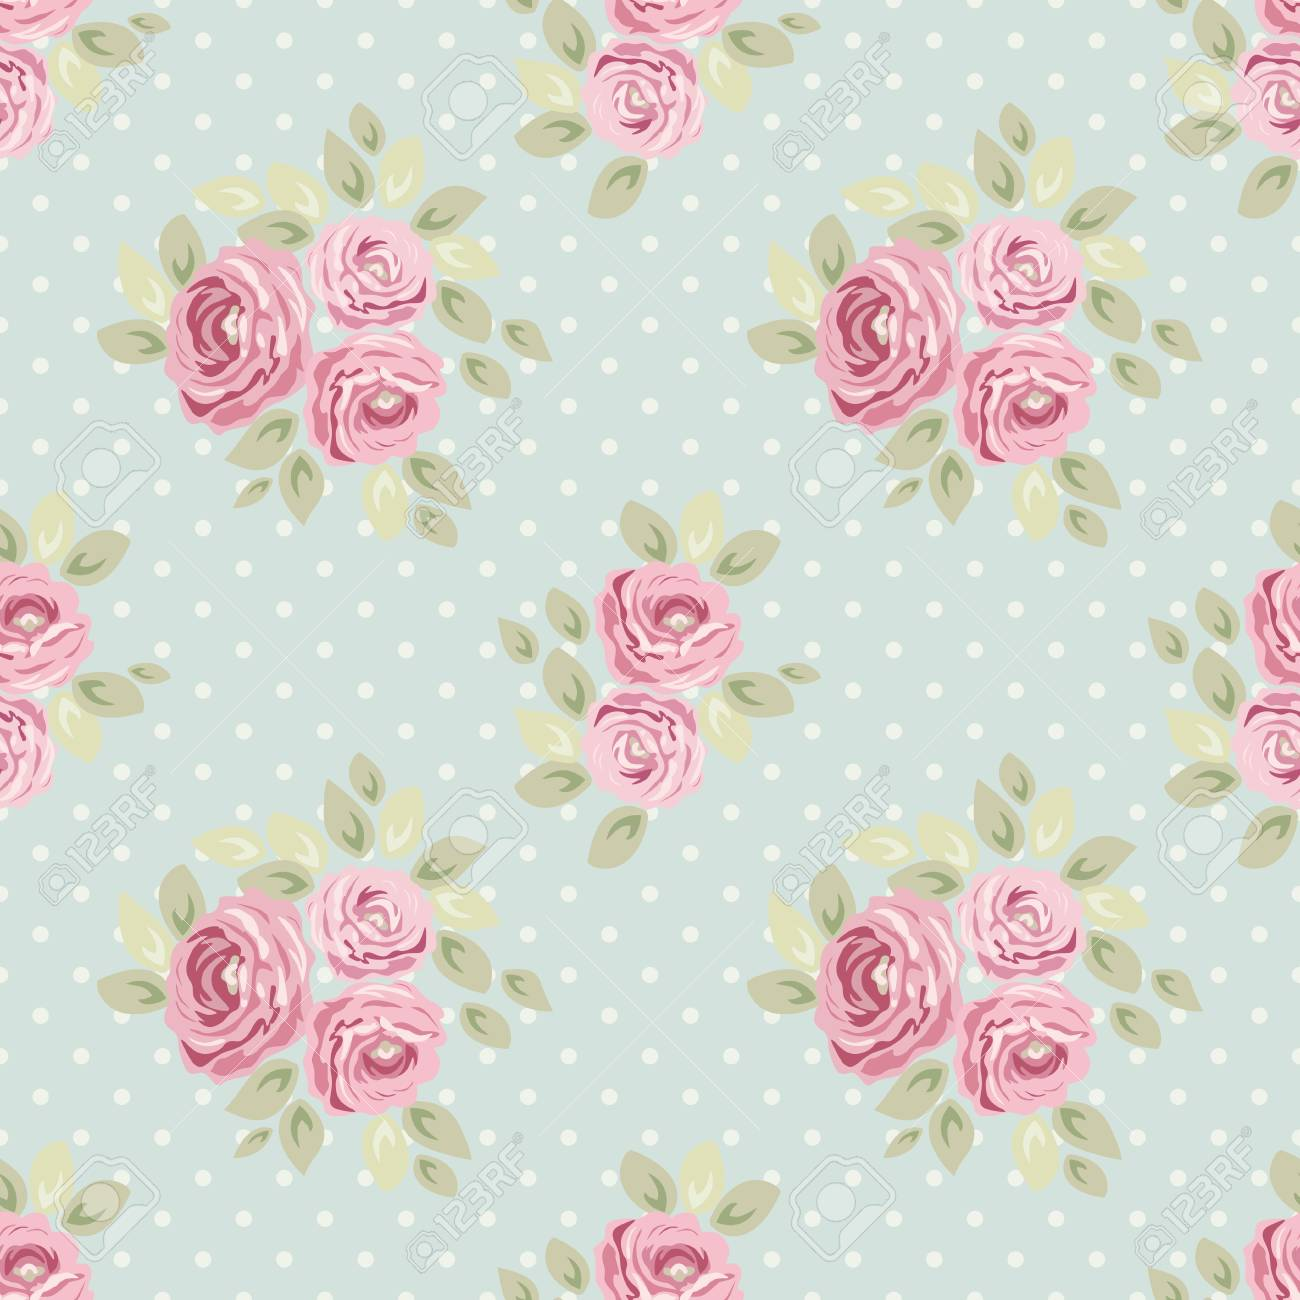 Cute Vintage Seamless Shabby Chic Floral Pattern For Your 1300x1300